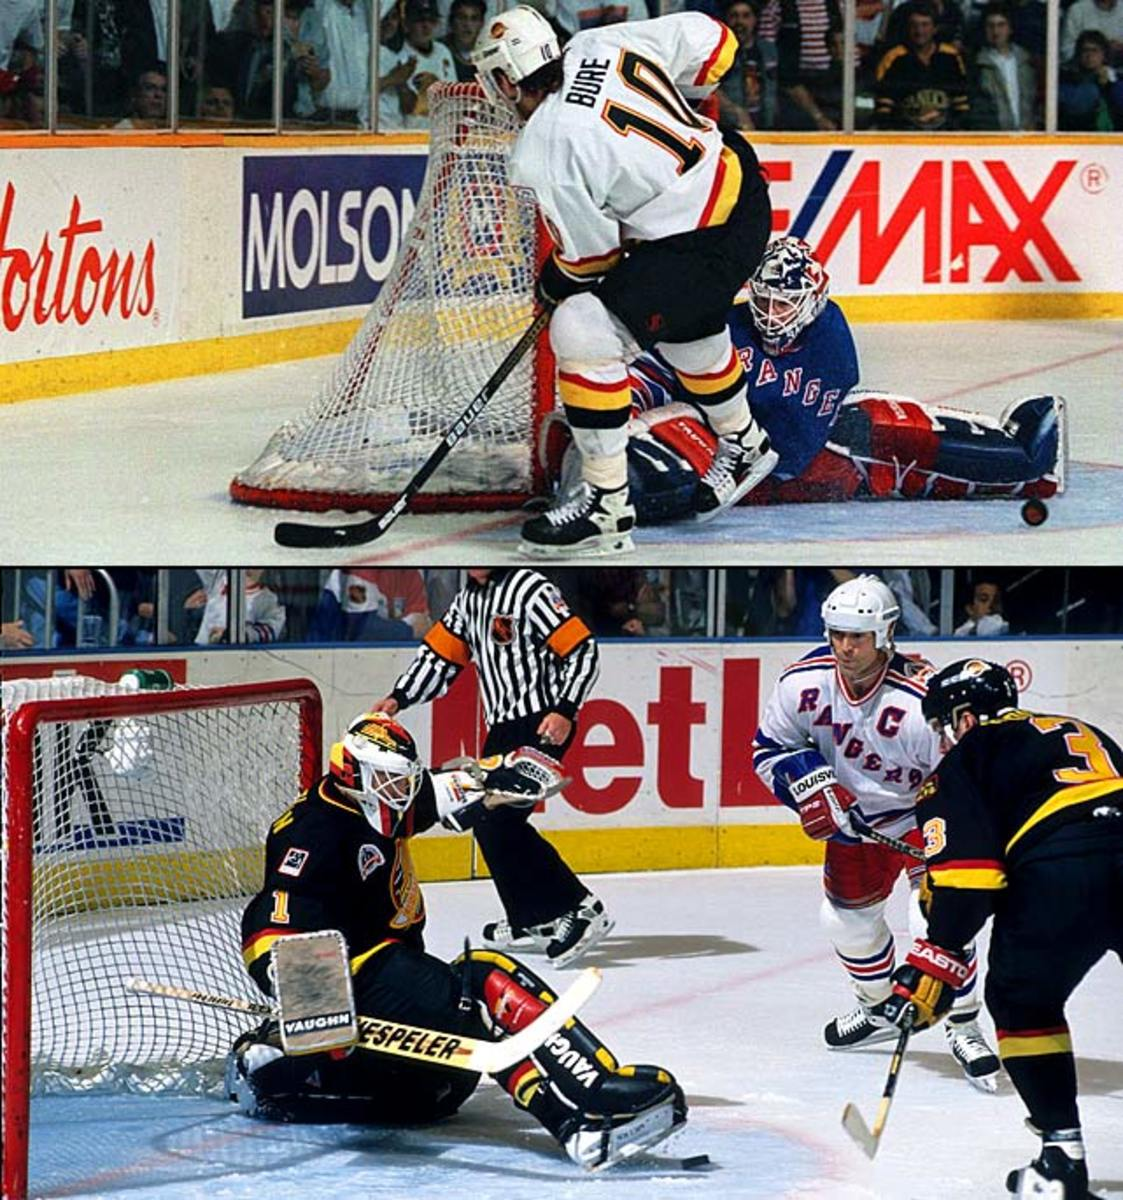 1993-94 Vancouver Canucks